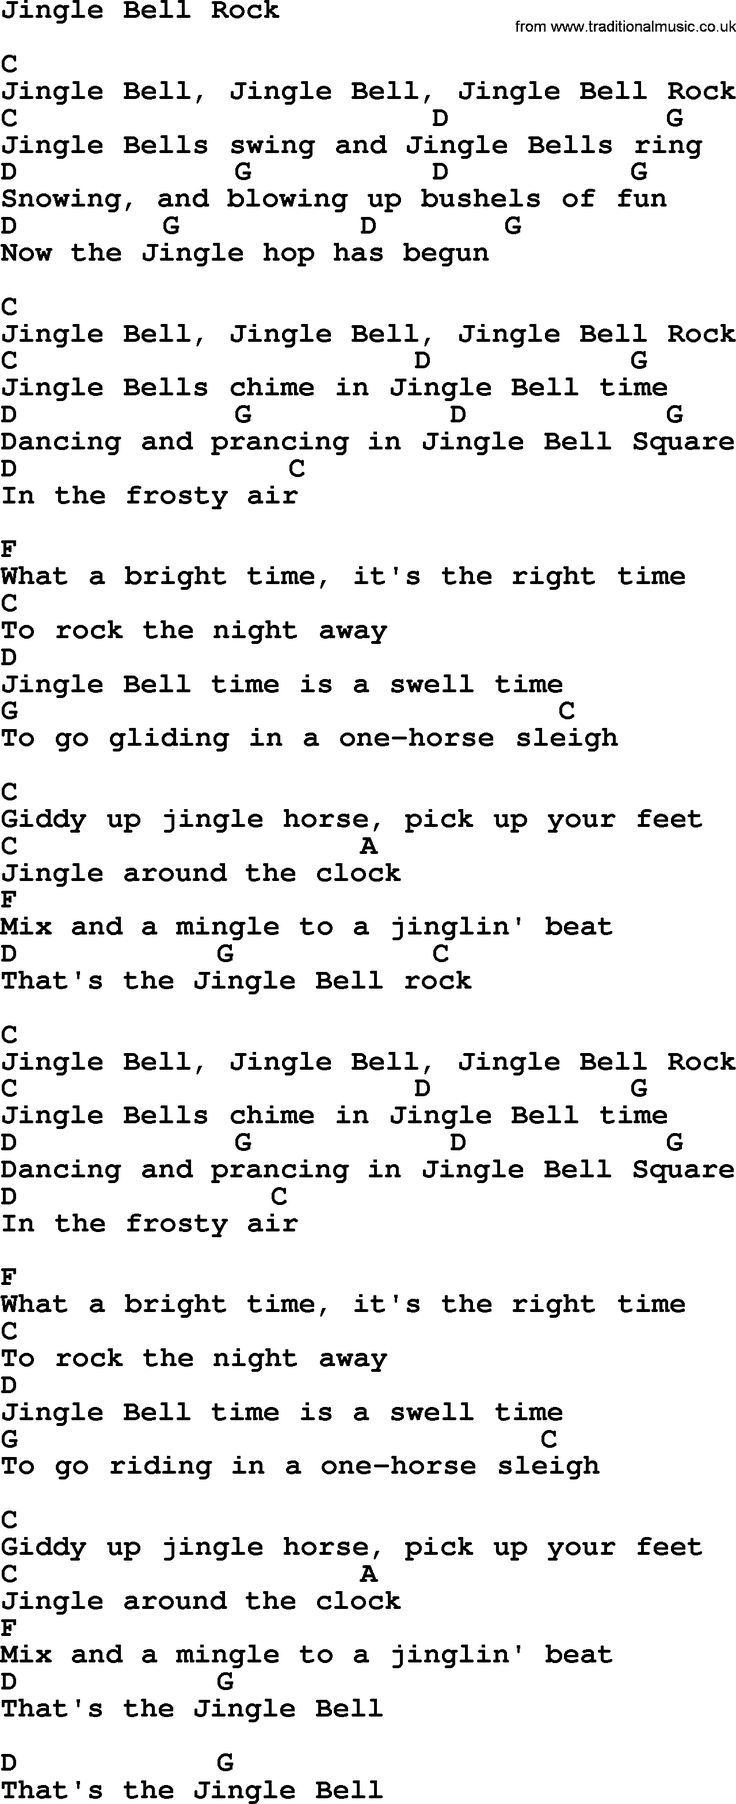 Strait song Jingle Bell Rock, lyrics and chords